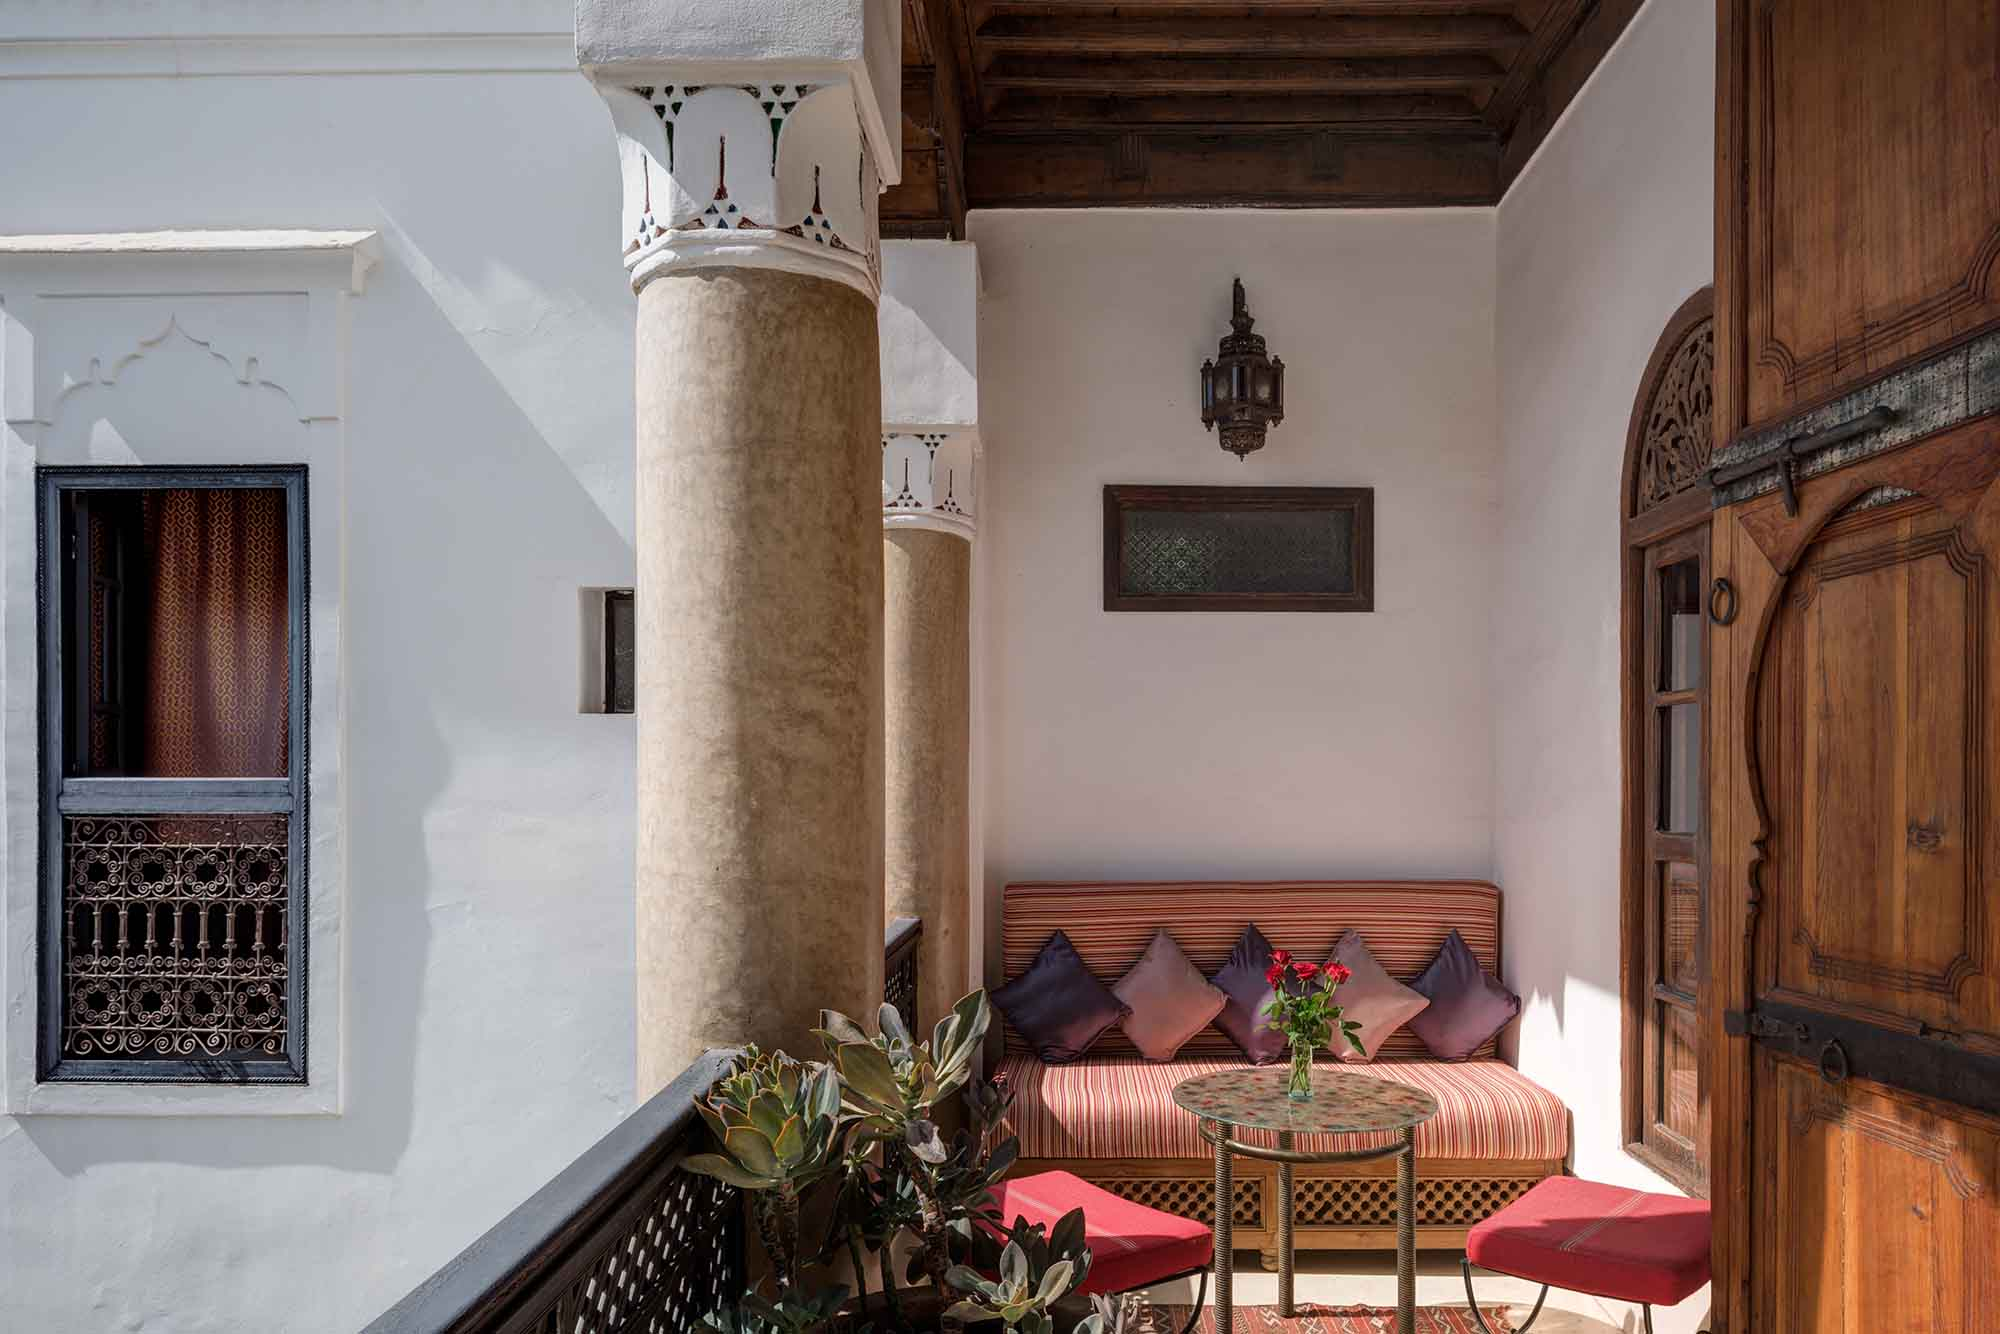 RIAD AZZAR GUEST HOUSE MARRAKECH TERRACE